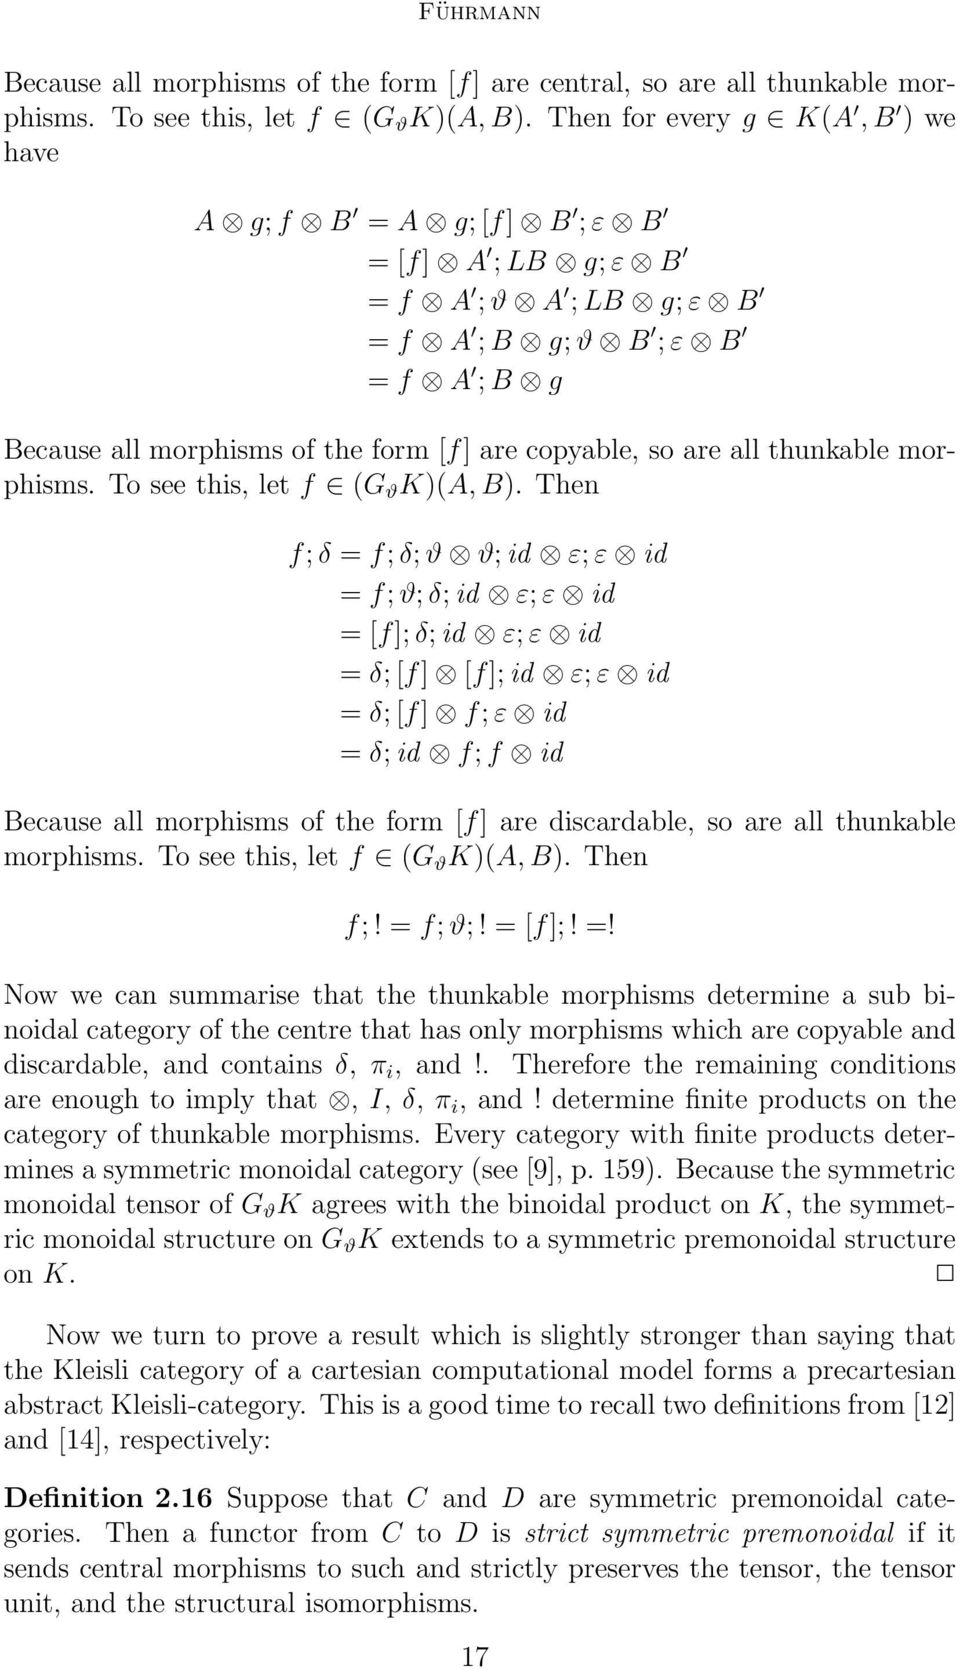 all thunkable morphisms. To see this, let f (G ϑ K)(A, B).